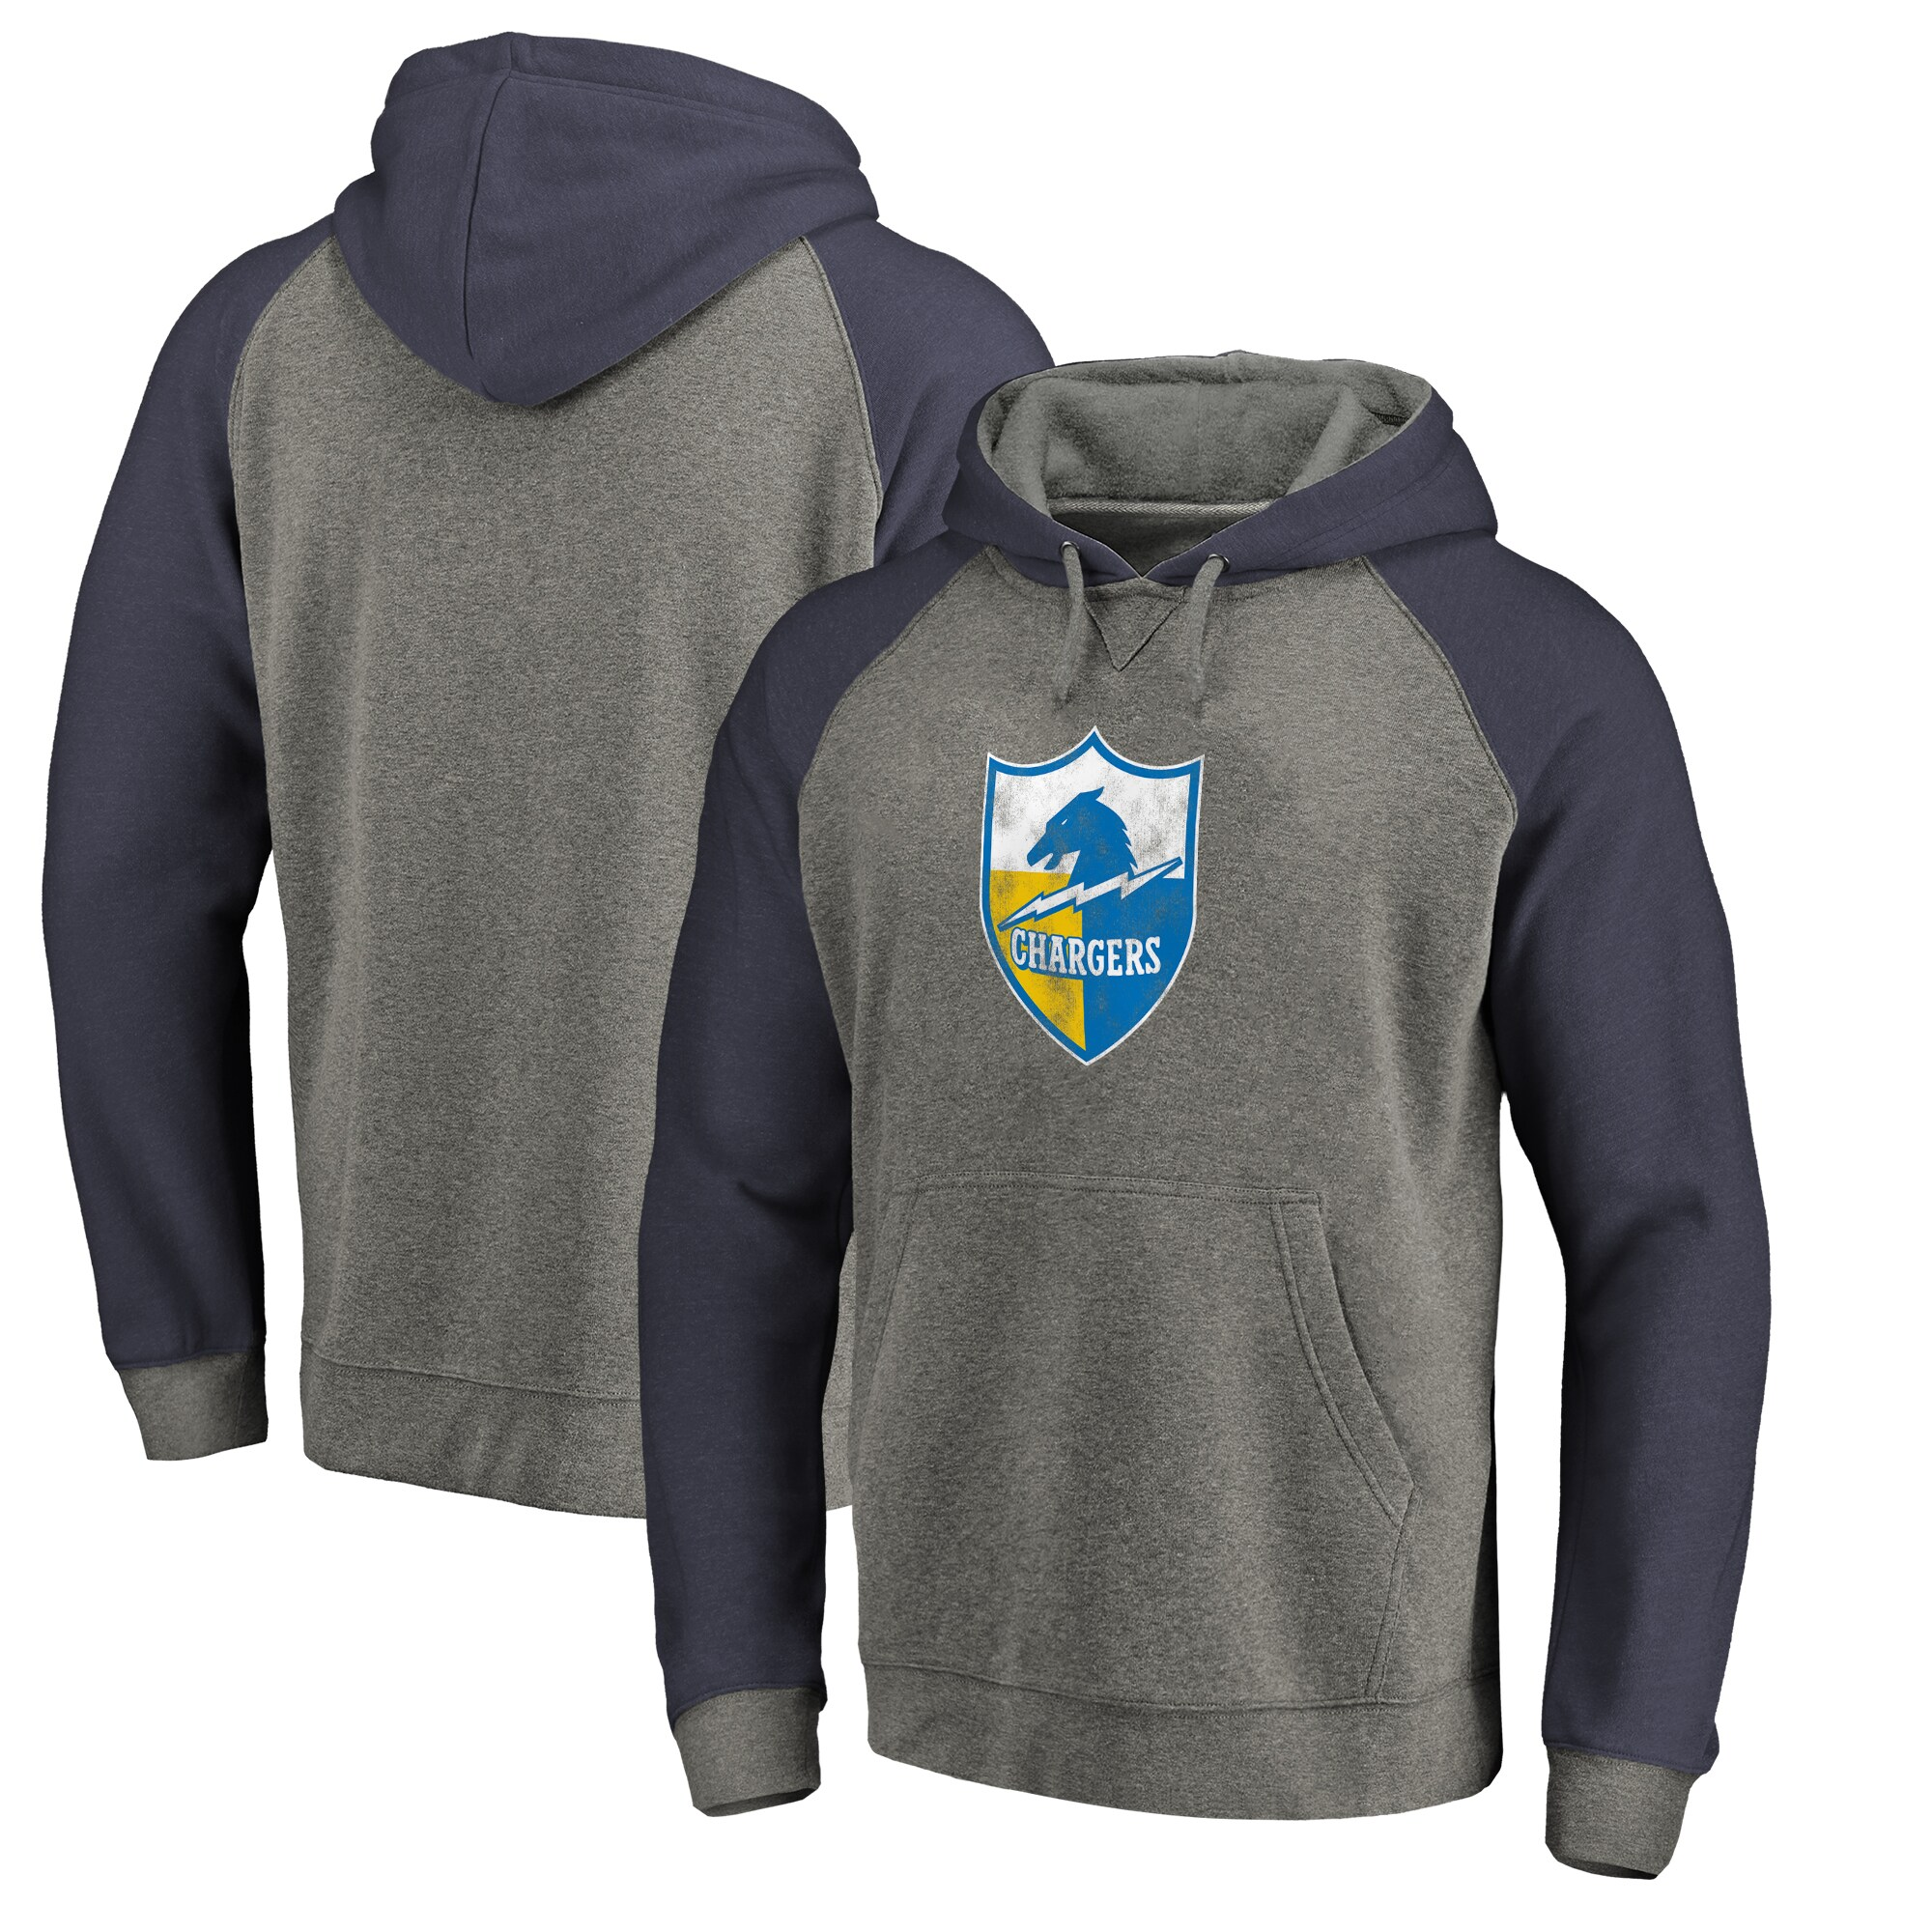 Los Angeles Chargers NFL Pro Line by Fanatics Branded Throwback Logo Tri-Blend Raglan Pullover Hoodie - Gray/Navy